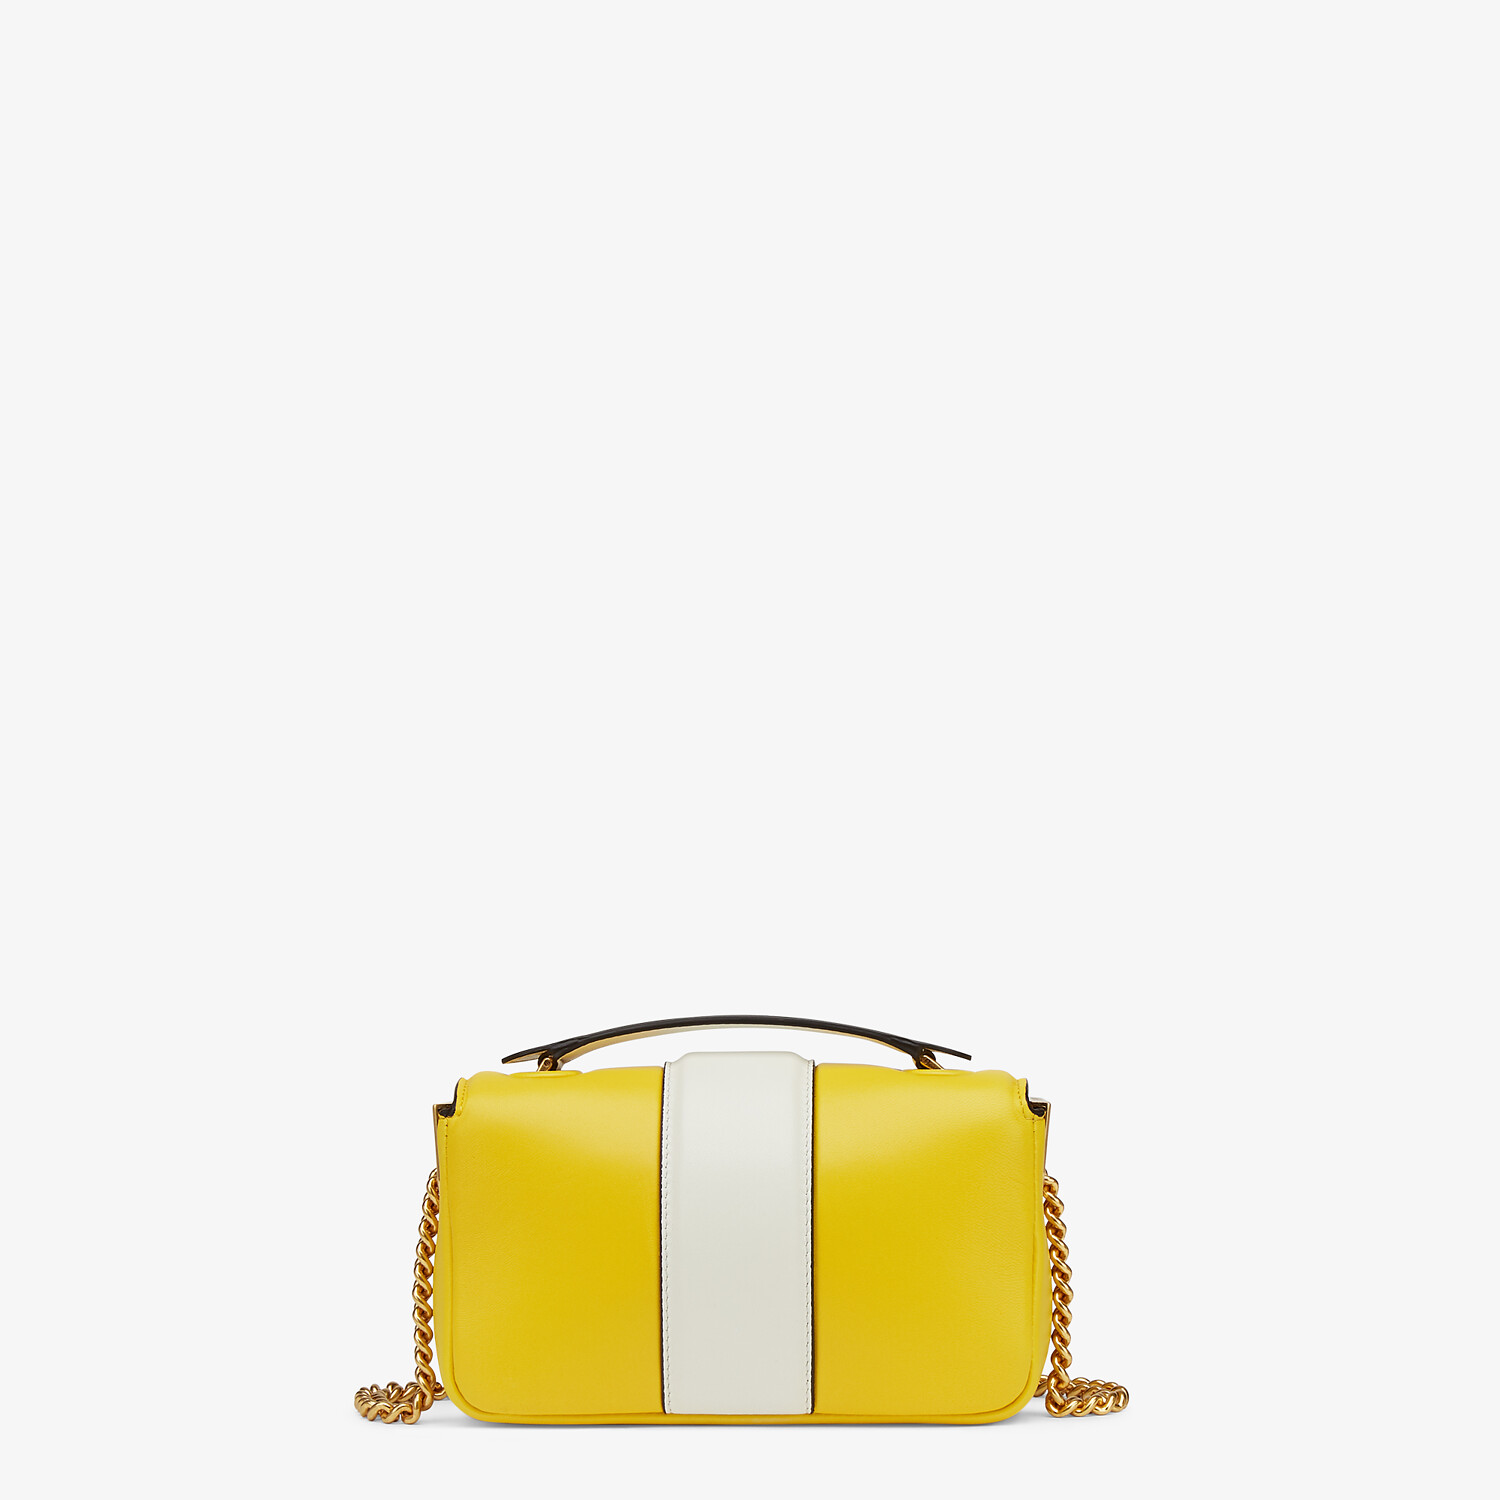 FENDI MINI BAGUETTE CHAIN - Yellow and white nappa leather bag - view 3 detail